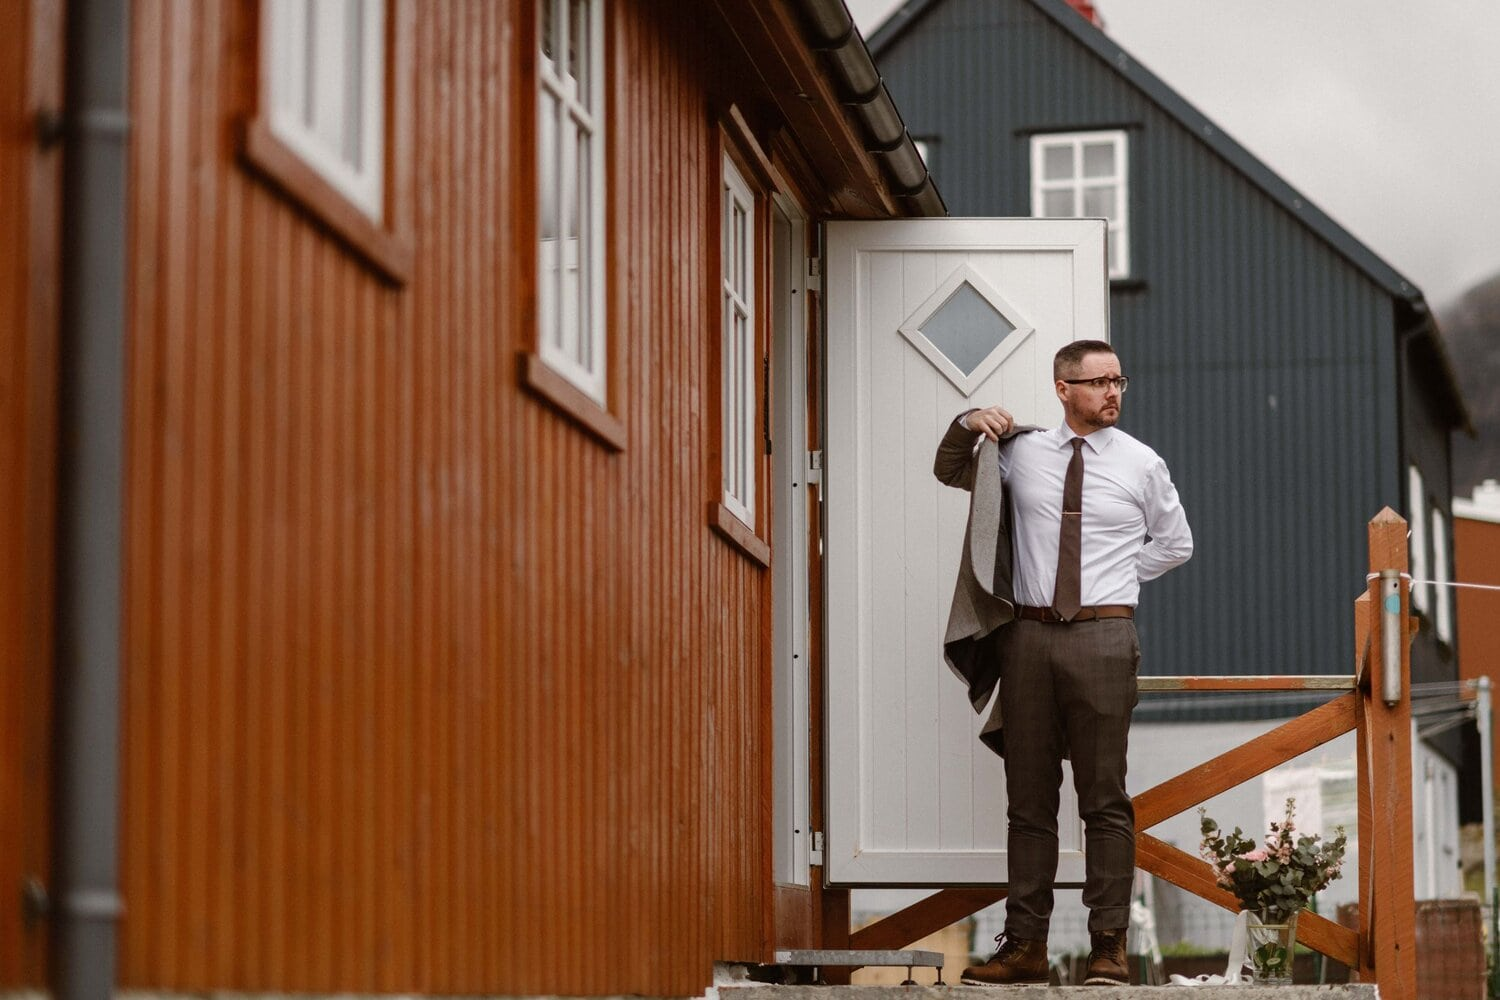 A groom puts on his jacket outside of an Airbnb.